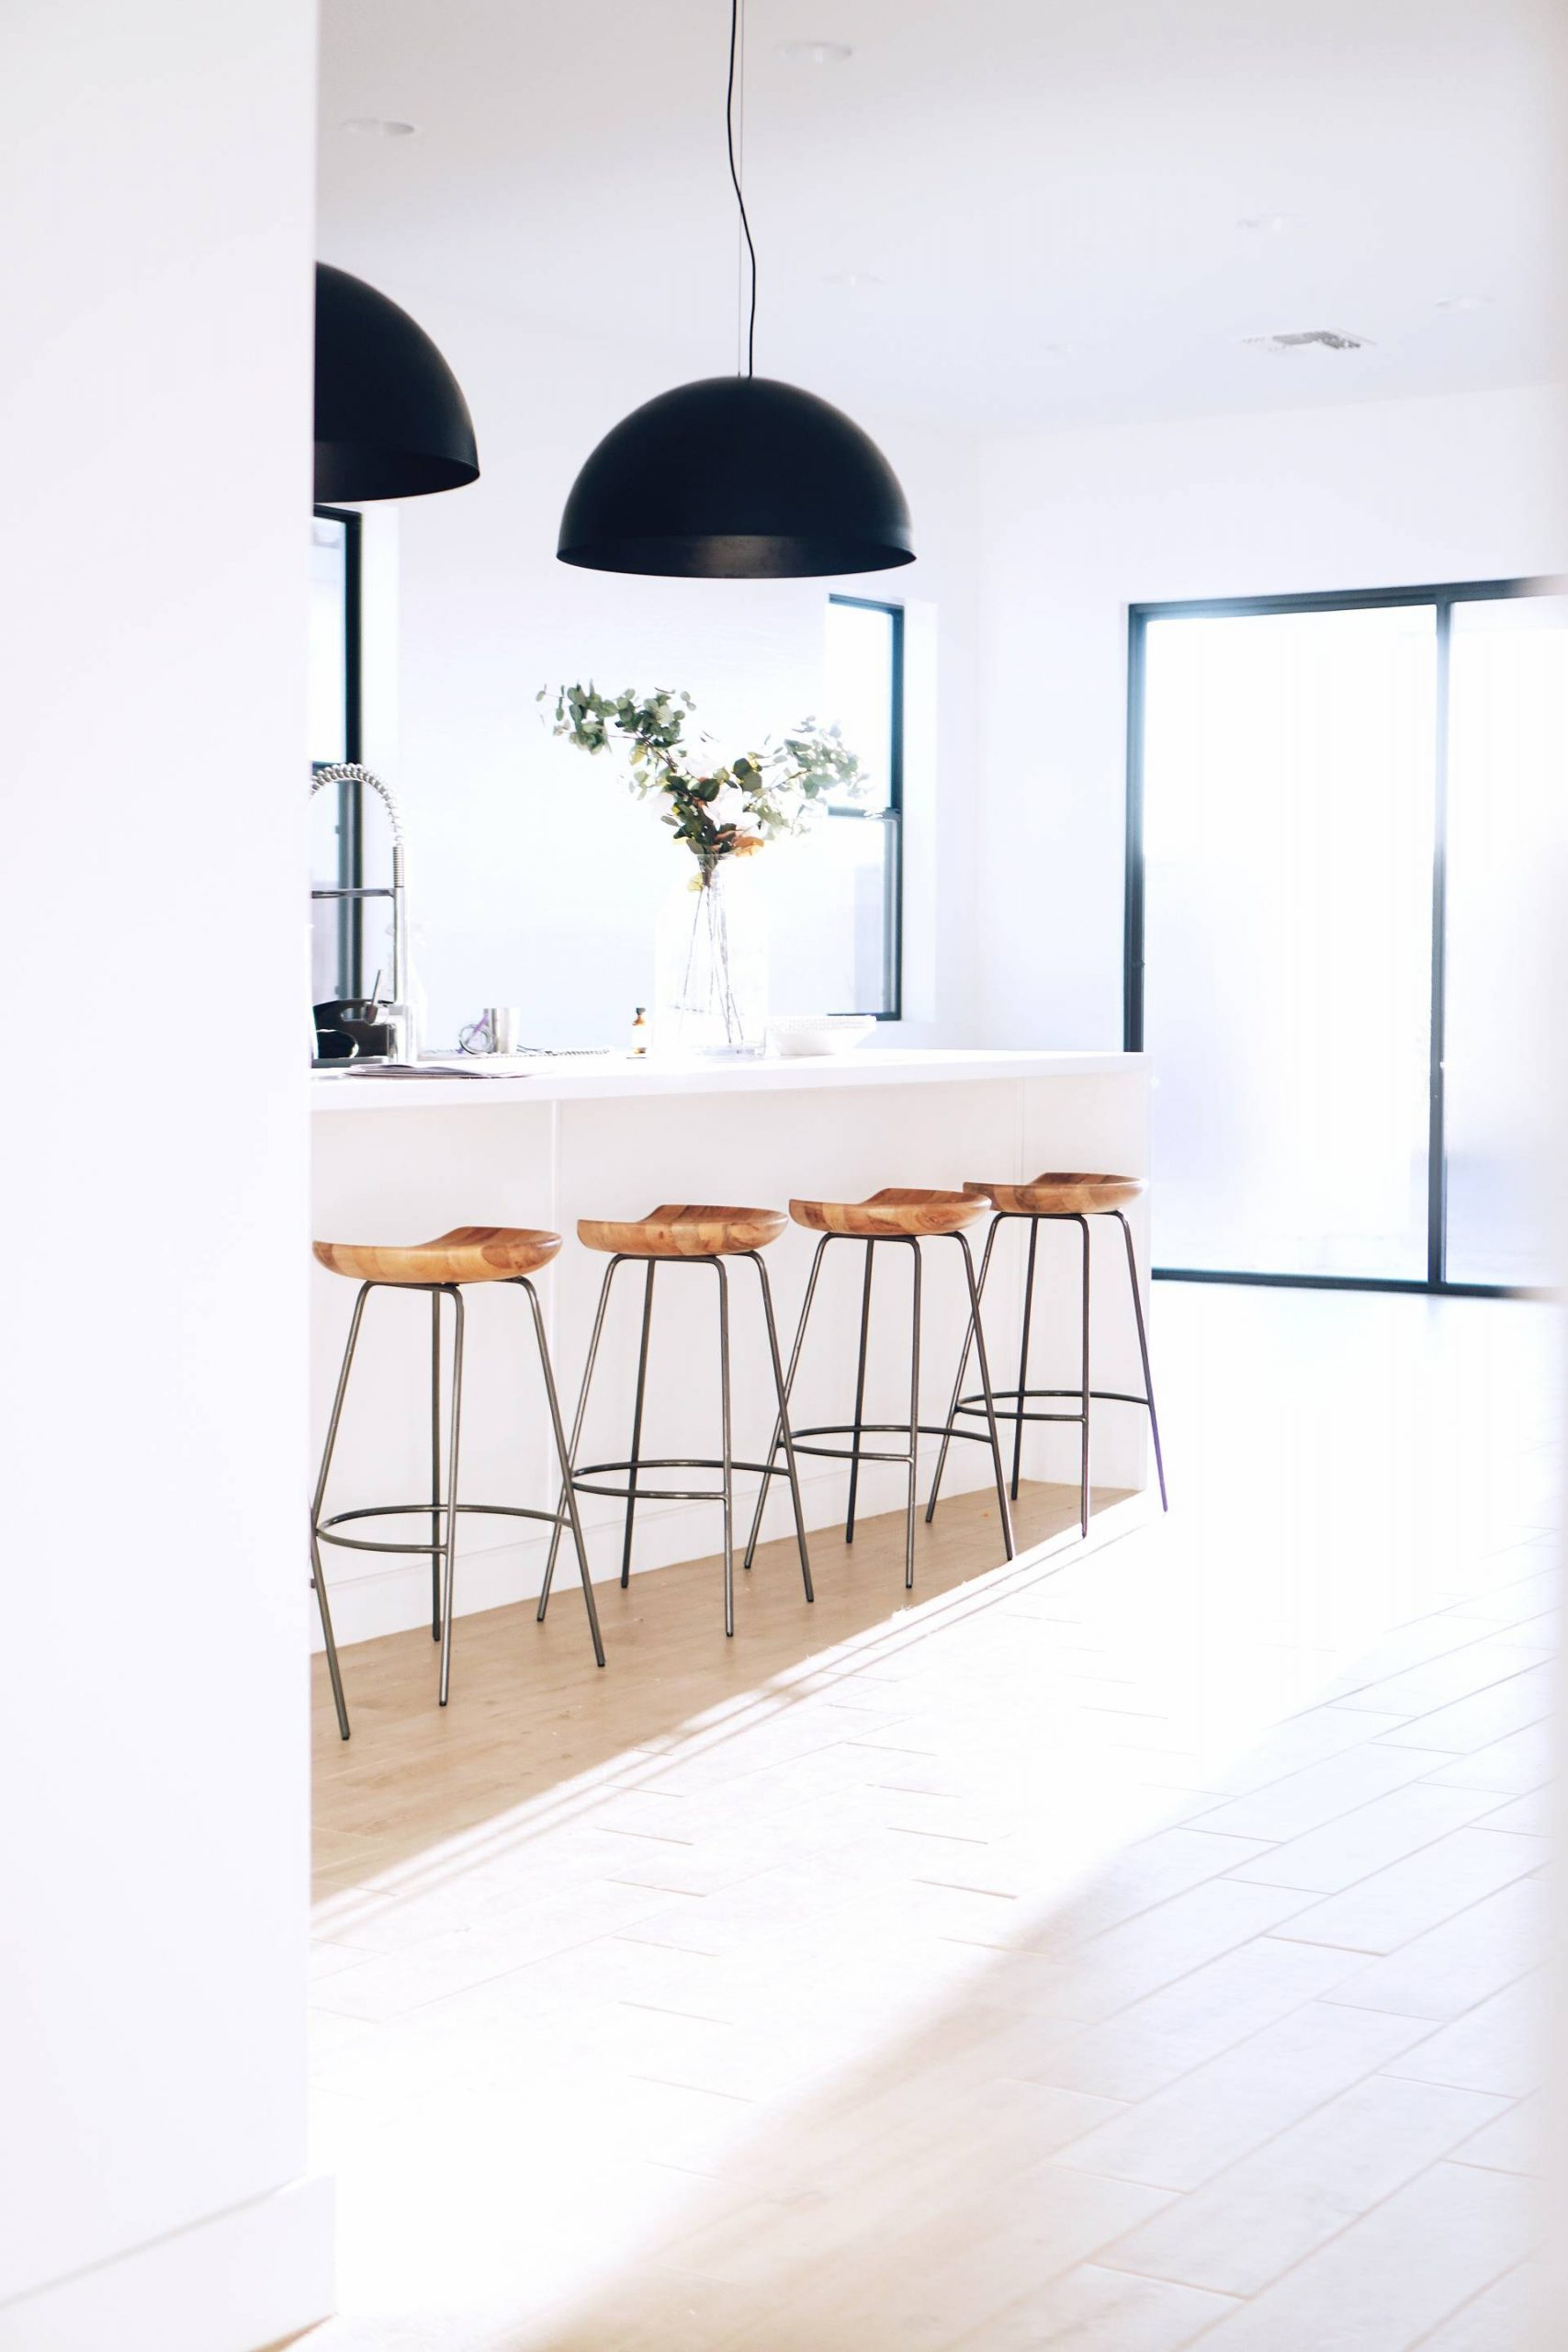 How to bring minimalism into your home